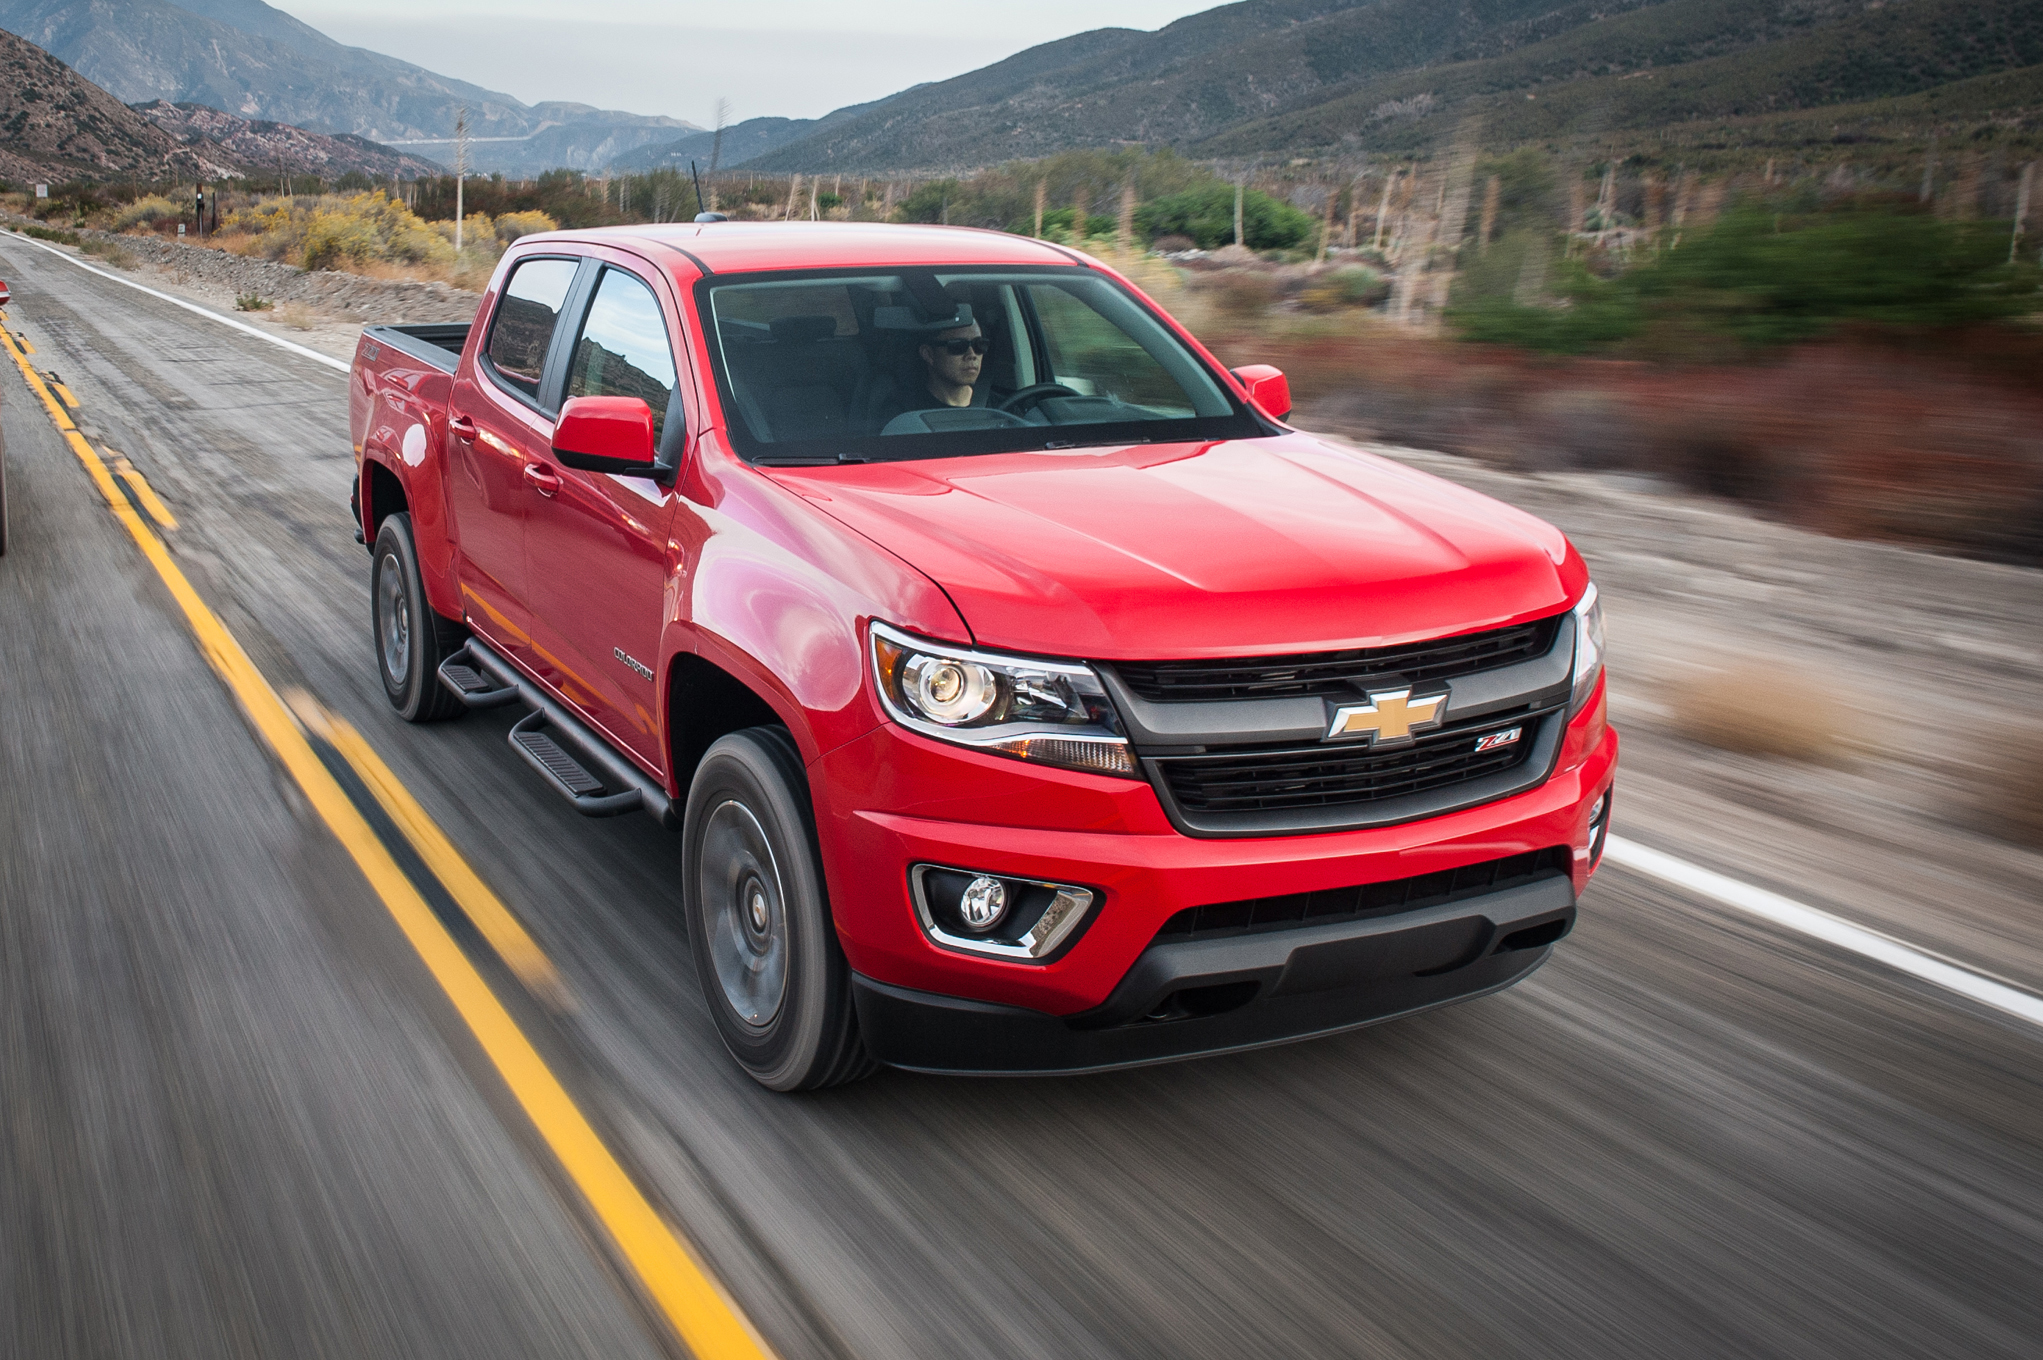 2015 Chevrolet Colorado Performance (Photo 6 of 8)